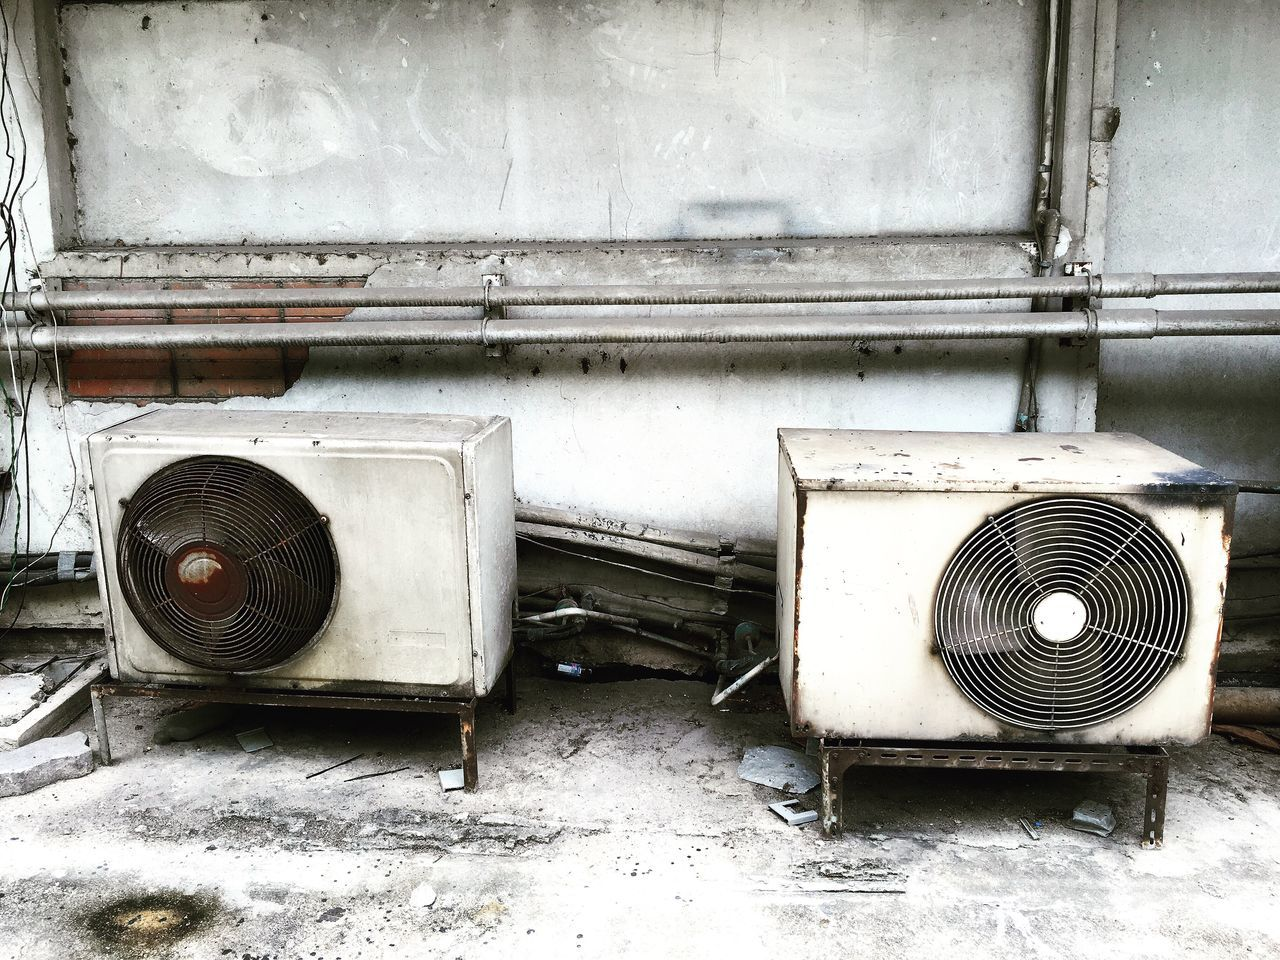 บางอย่างก็เกิดมาคู่กัน Compressor Compressor Unit Compressore Air Conditioner Old Old Machines